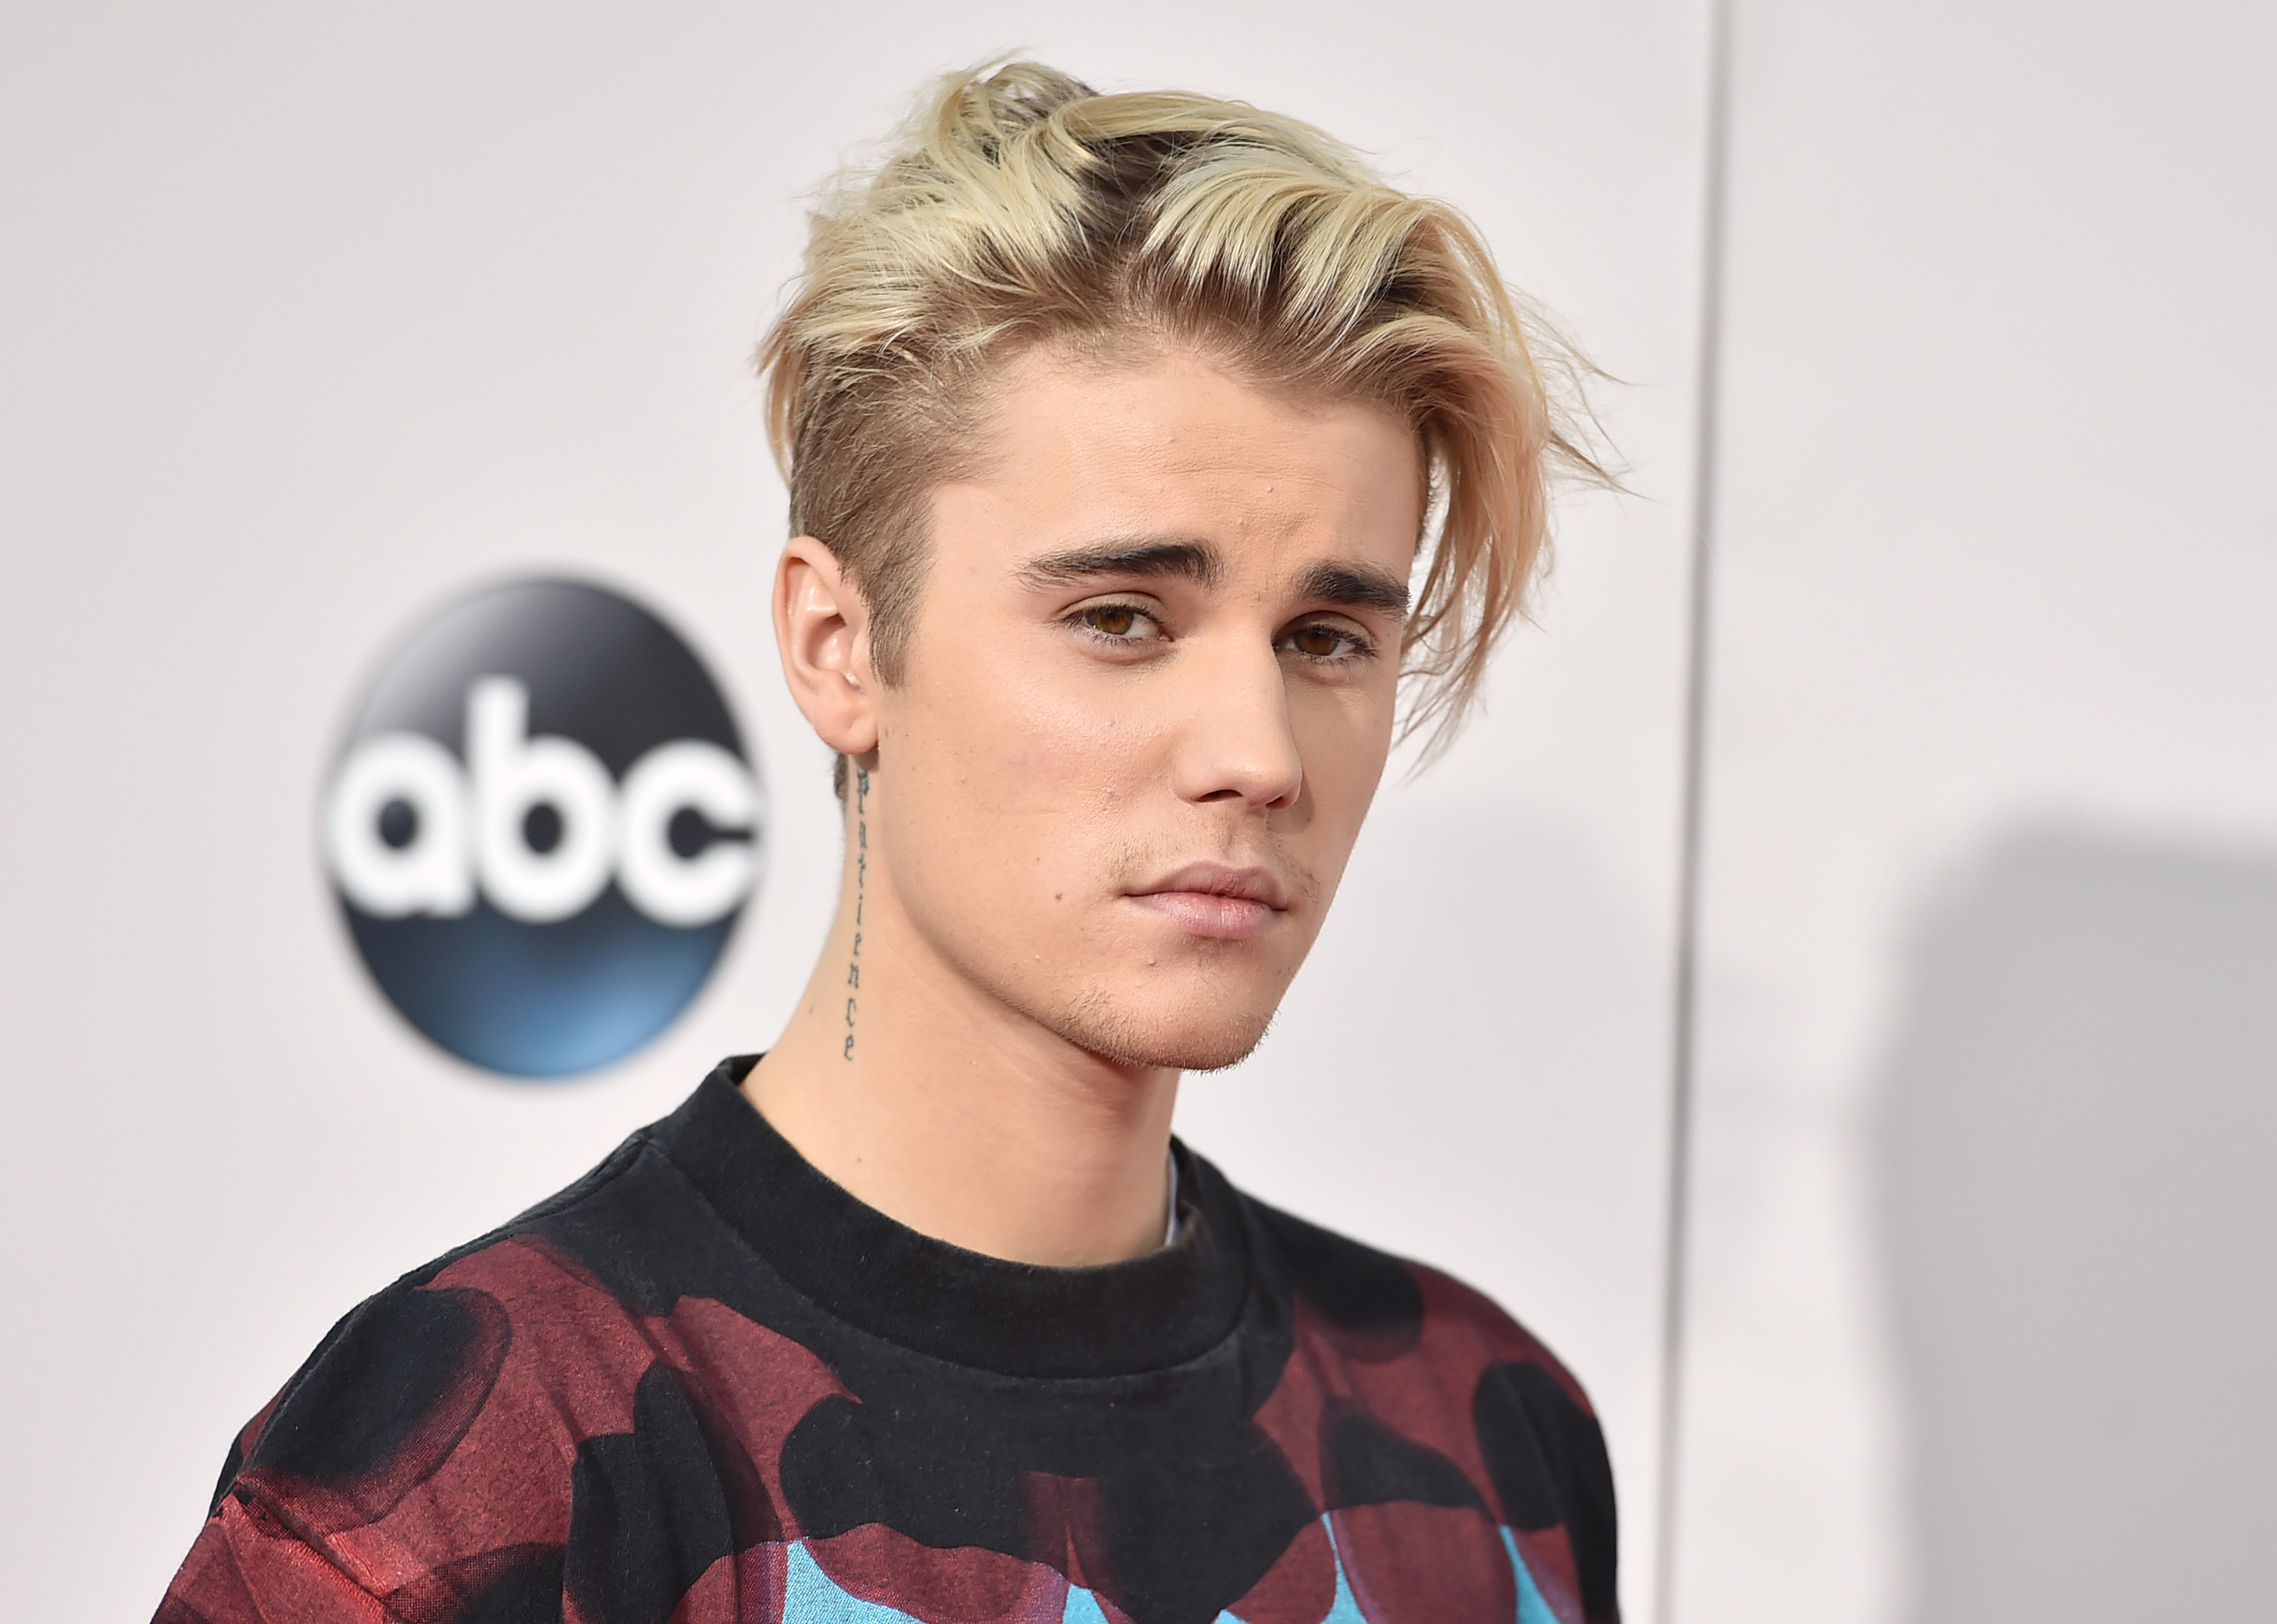 "FILE - In this Sunday, Nov. 22, 2015 file photo, Justin Bieber arrives at the American Music Awards at the Microsoft Theater in Los Angeles. With his recent batch of hit singles and semi-grown-up sound - including the electro-pop ""Where Are U Now"" with DJ-producers Skrillex and Diplo - adult men have begun attending the church of Bieber, and while some have issues admitting it, other proudly say they are Beliebers. ?Sorry? and ?What Do You Mean,? currently at Nos. 2 and 4 on Billboard?s Hot 100 chart, helped Bieber solidify his comeback after years of a broken image, which included arrests, public smoking and fainting onstage that led to hospitalization. (Photo by Jordan Strauss/Invision/AP, File)"